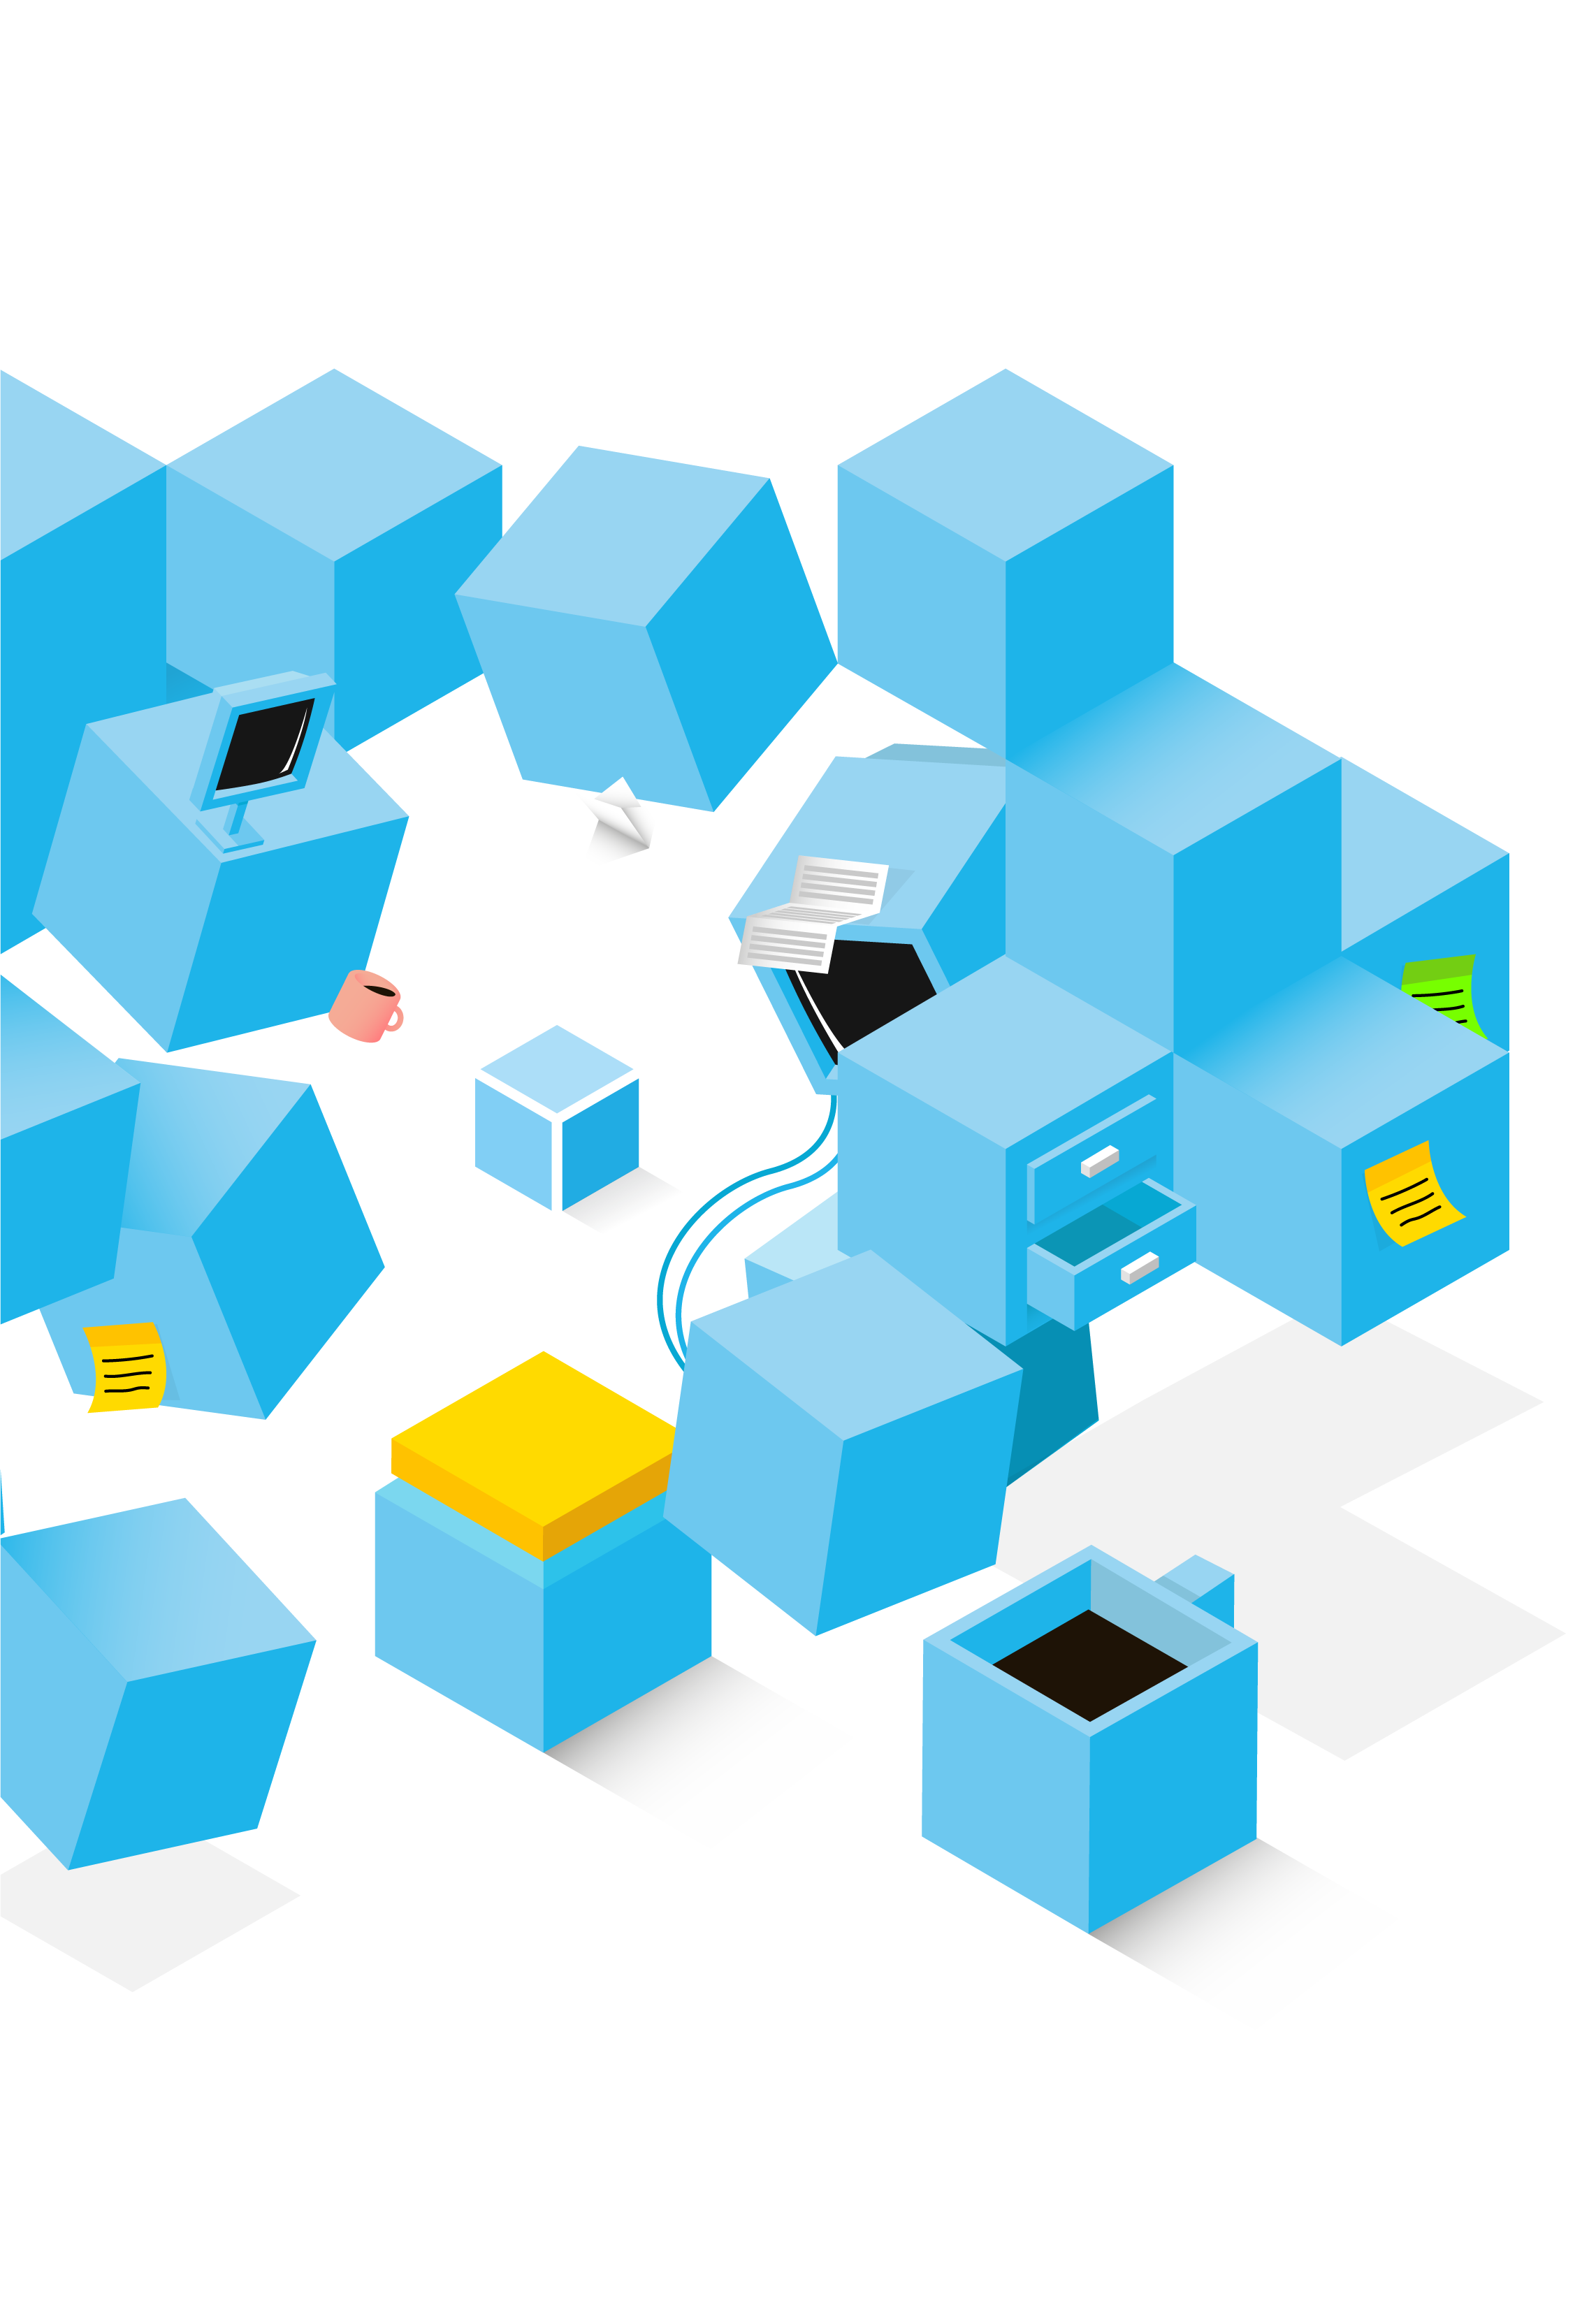 services image cube illustration